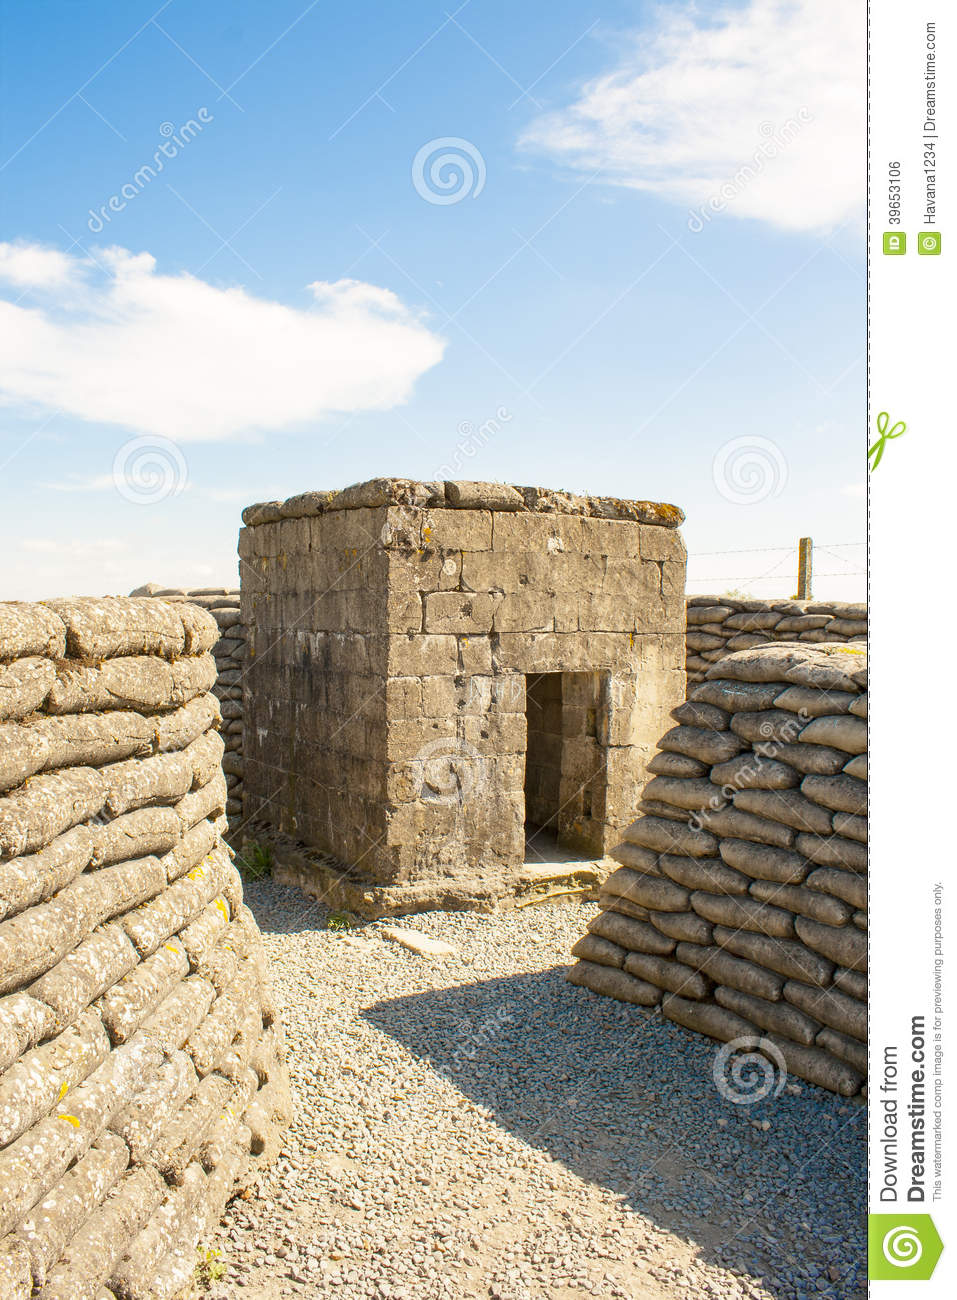 A WW1 Bunker in the trench of death Belgium world war.